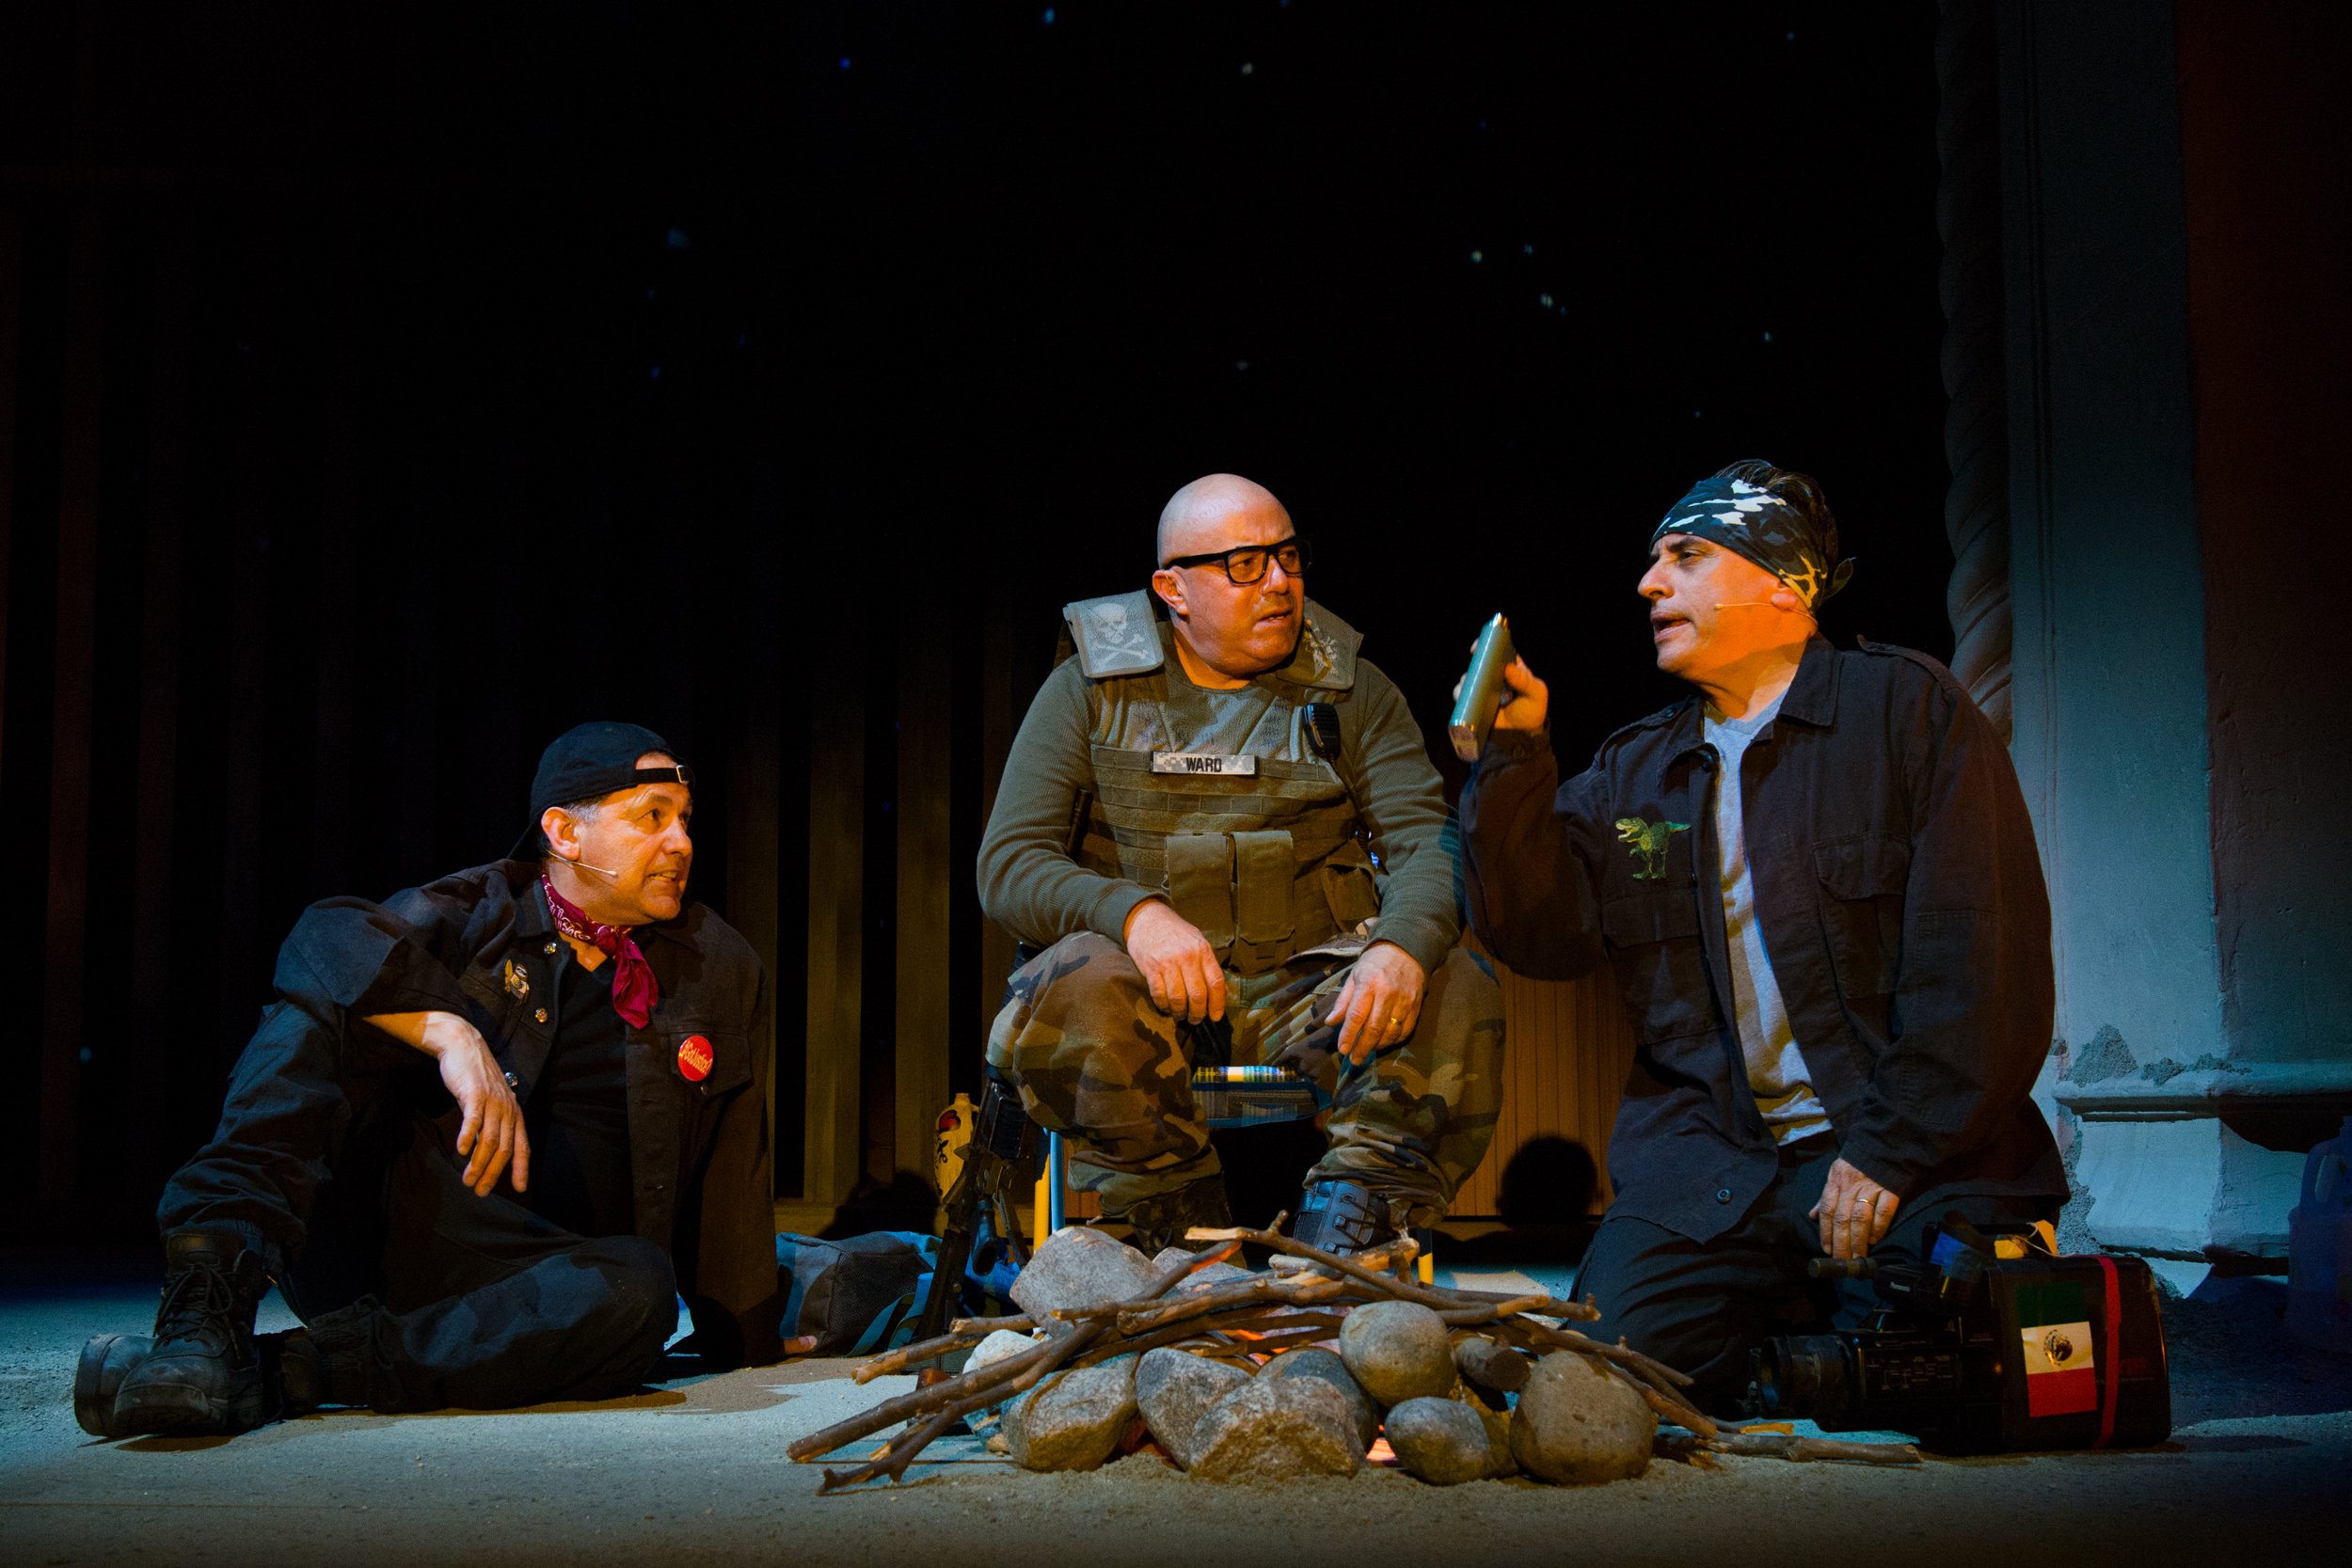 (L-R) Culture Clash's Ric Salinas, Herbert Sigüenza, and Richard Montoya in Bordertown Now at Pasadena Playhouse. // Photo by Philicia Endelman